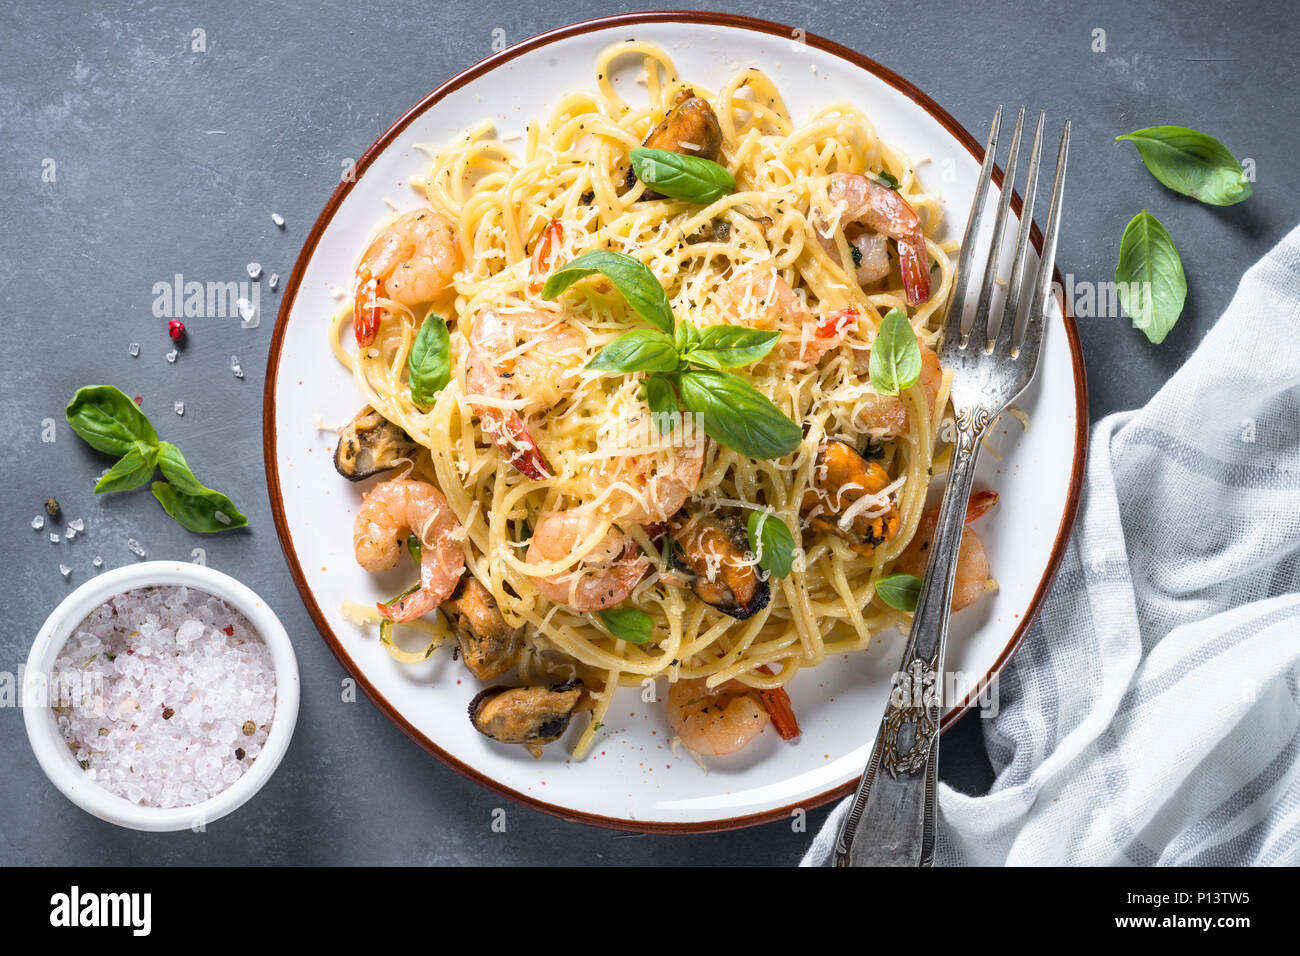 Pasta spaghetti with seafood and cream sauce. - Stock Image